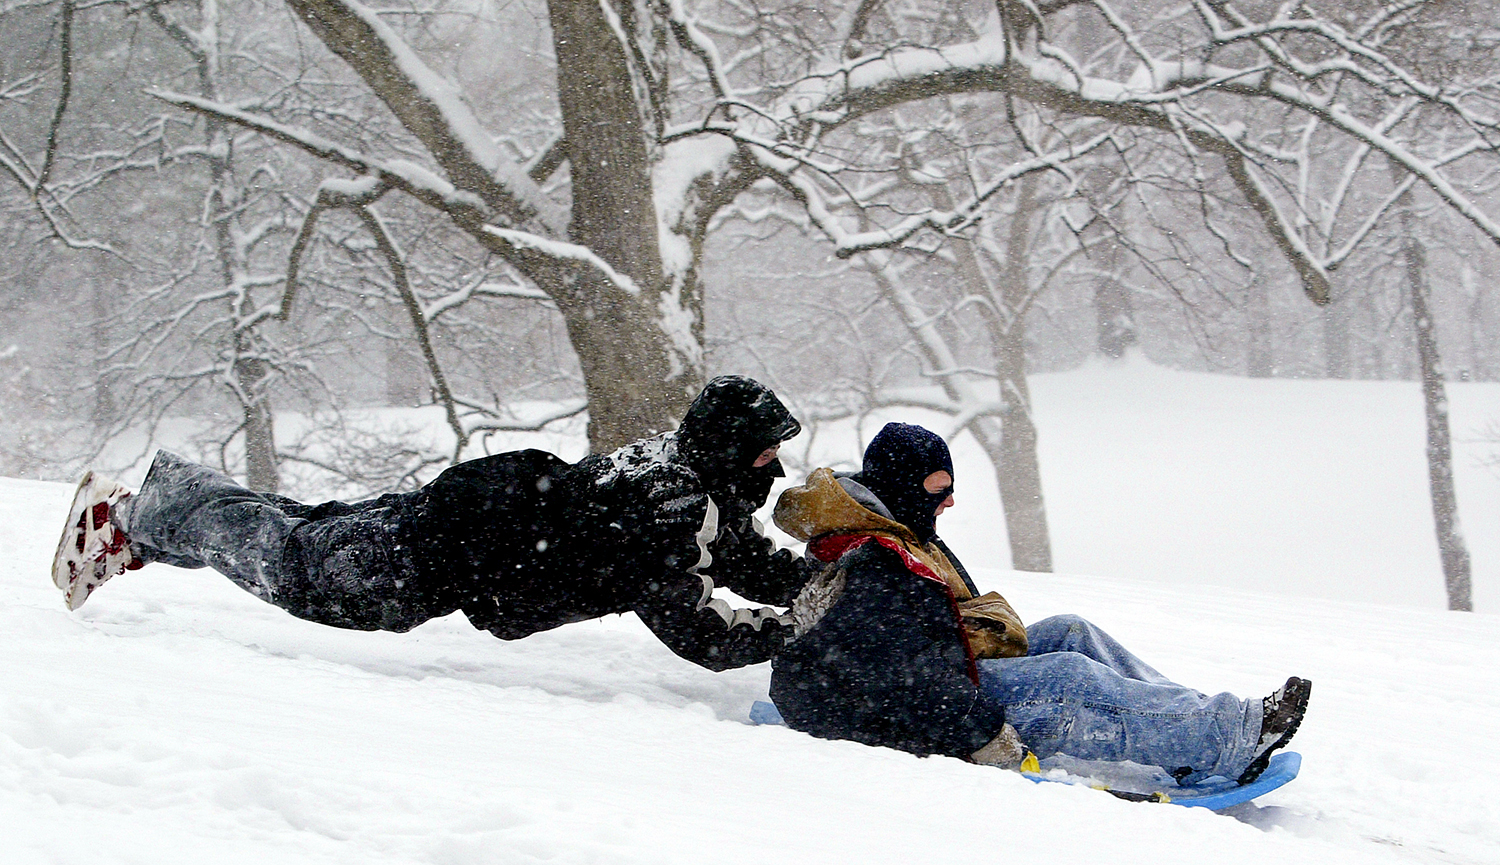 Joshua Dea, 19, gets his friend, Baron Dodd, 18, started down a hill at Douglas Park in Springfield. Jeff Thompson/The State Journal-Register